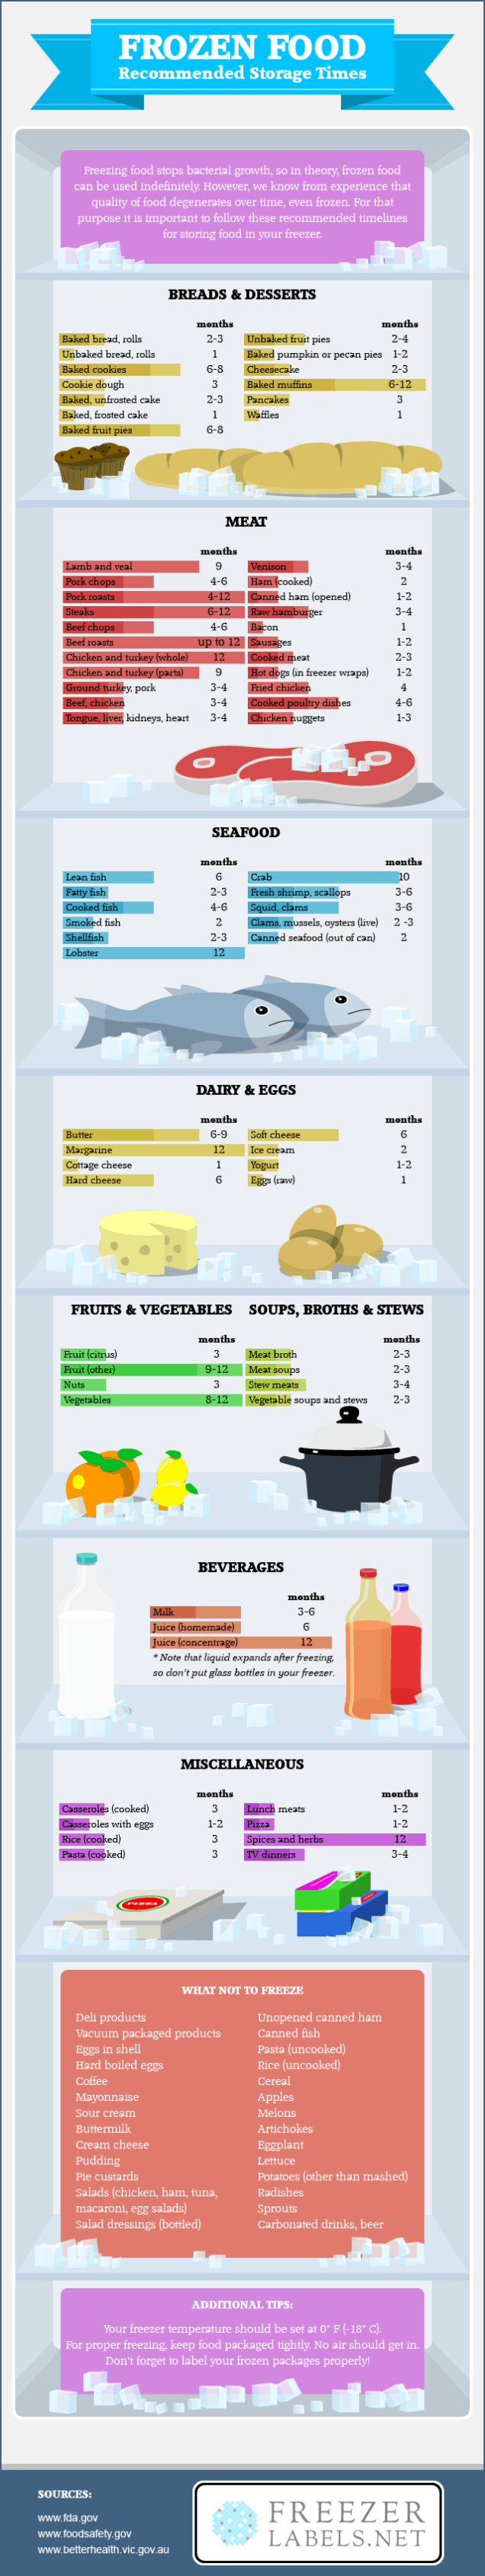 Frozen Food Storage Infographic